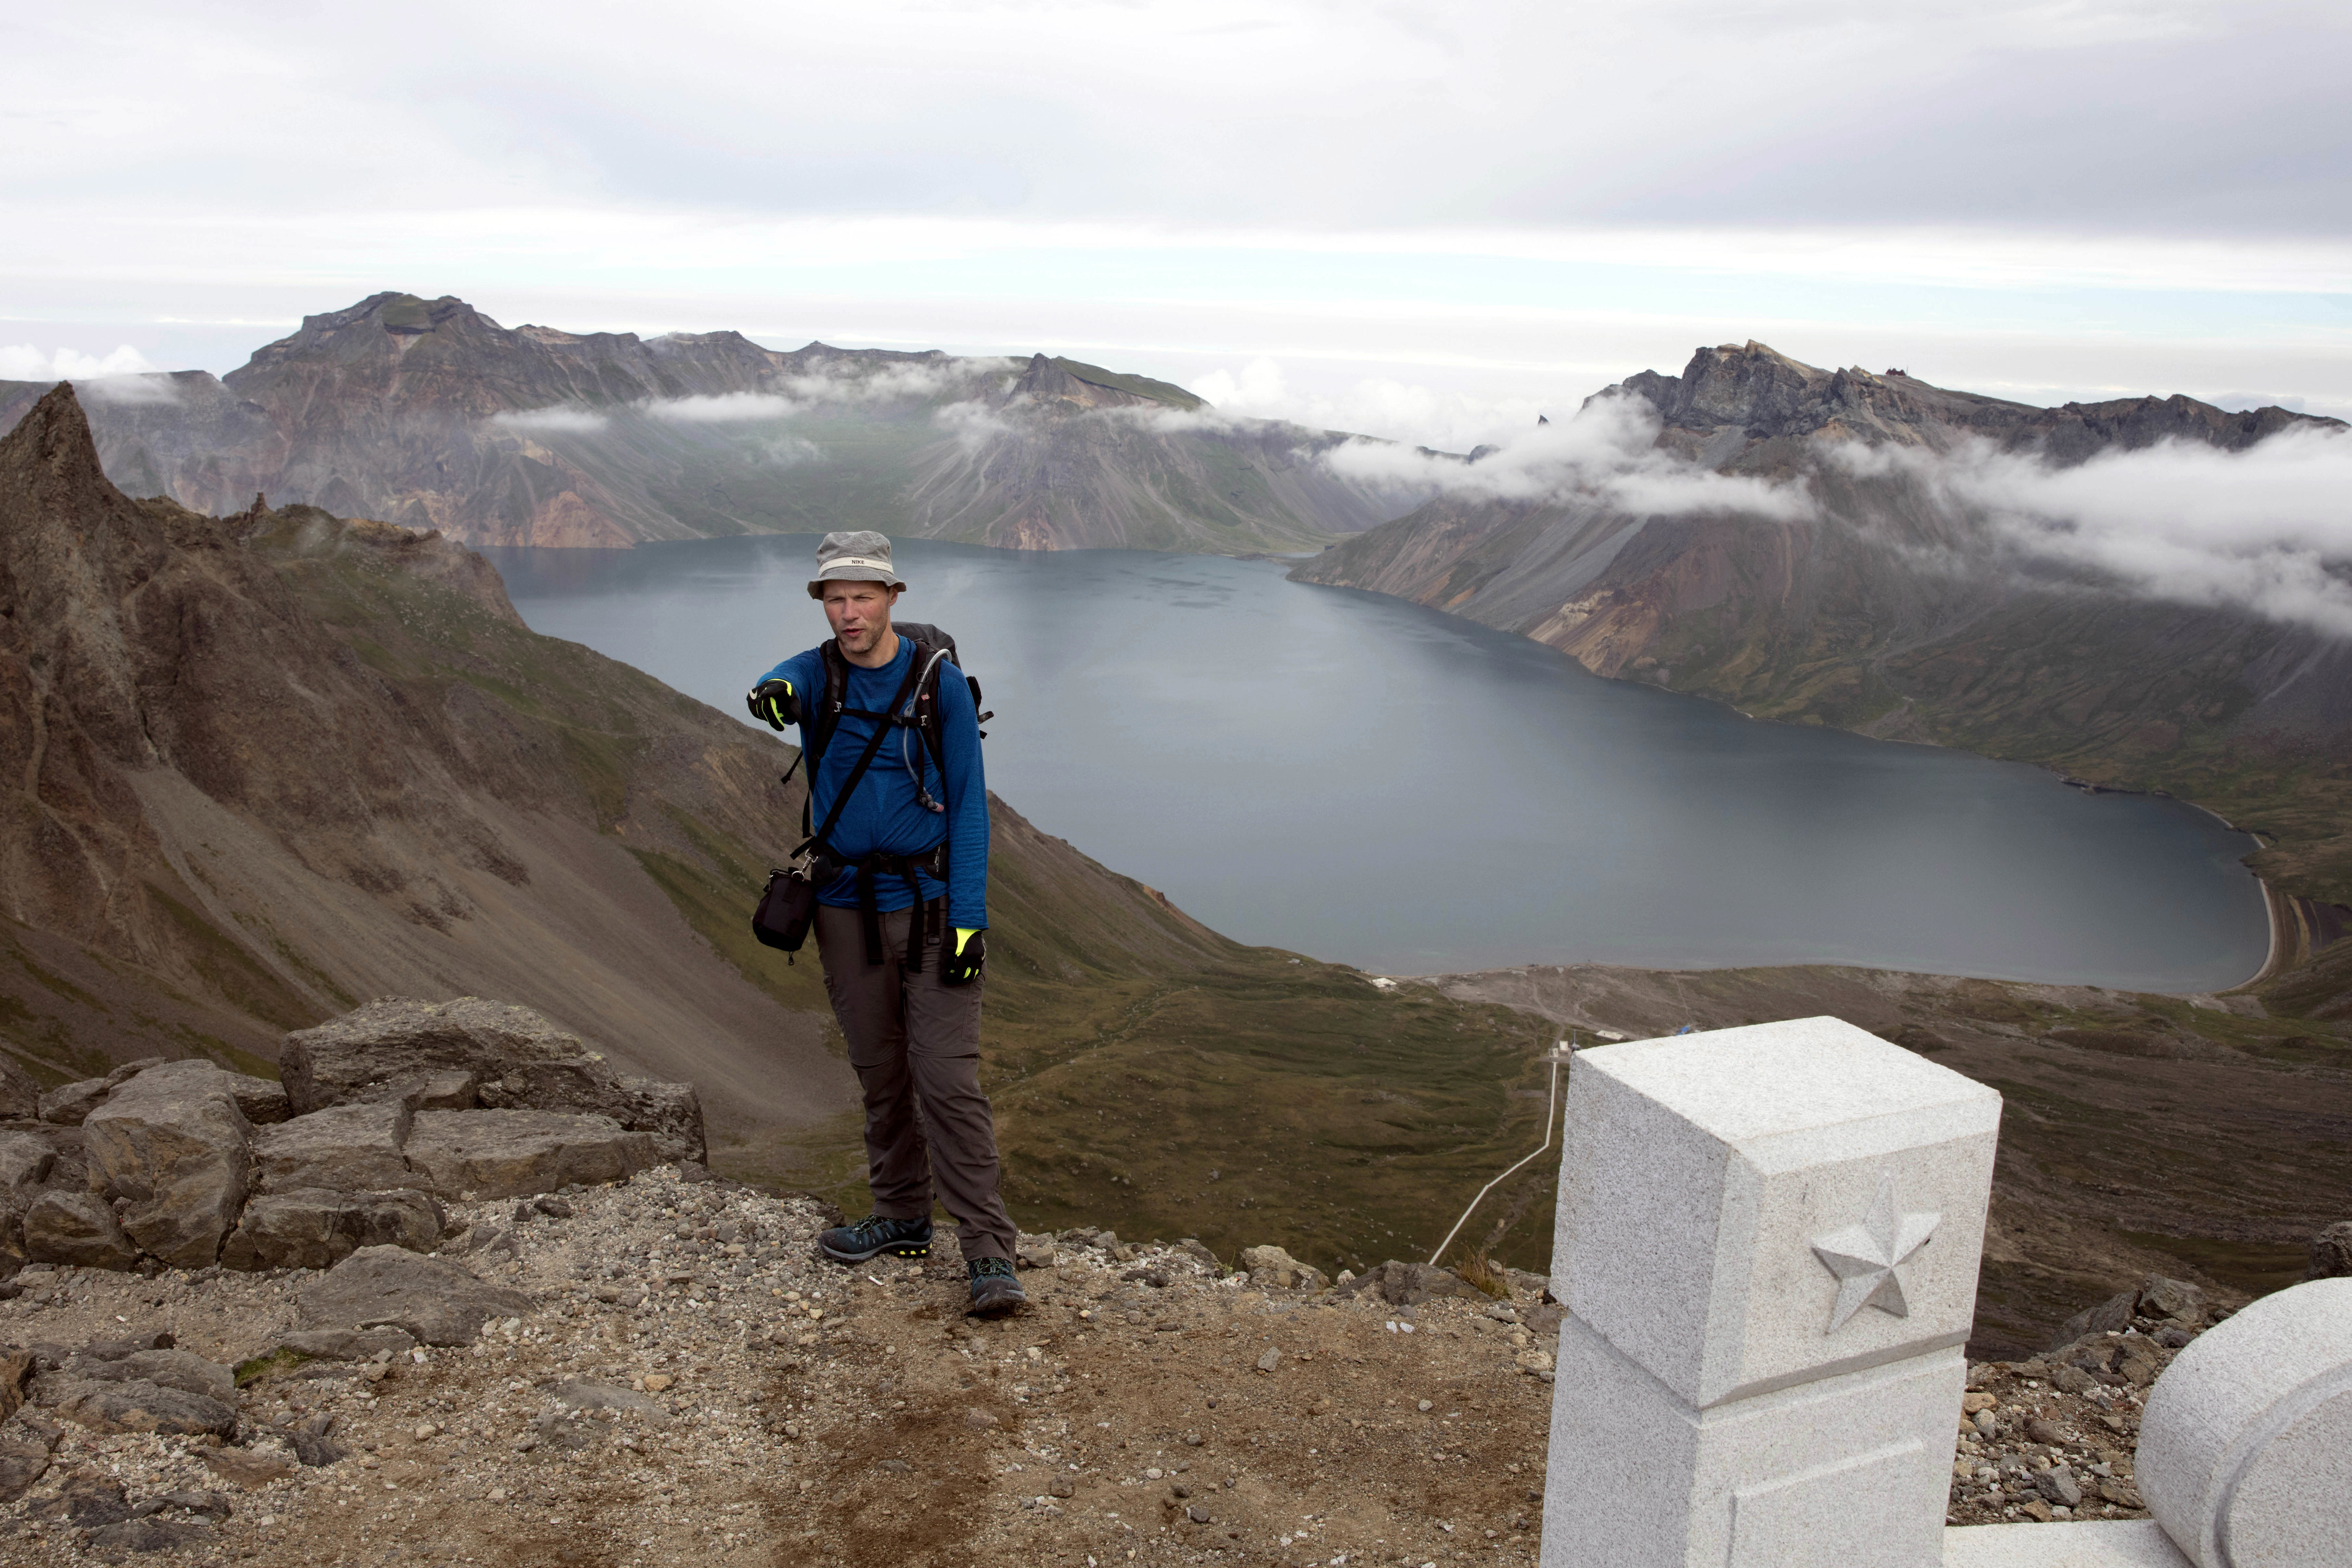 In this Saturday, Aug. 18,2018, photo, Tarjei Naess Skrede of Norway who is hiking with Roger Shepherd of Hike Korea stands near a view of the caldera and Lake Chon on Mount Paektu in North Korea. Hoping to open up a side of North Korea rarely seen by outsiders, Shepherd, a New Zealander who has extensive experience climbing the mountains of North and South Korea is leading the first group of foreign tourists allowed to trek off road and camp out under the stars on Mount Paektu, a huge volcano that straddles the border that separates China and North Korea. (AP Photo/Ng Han Guan)